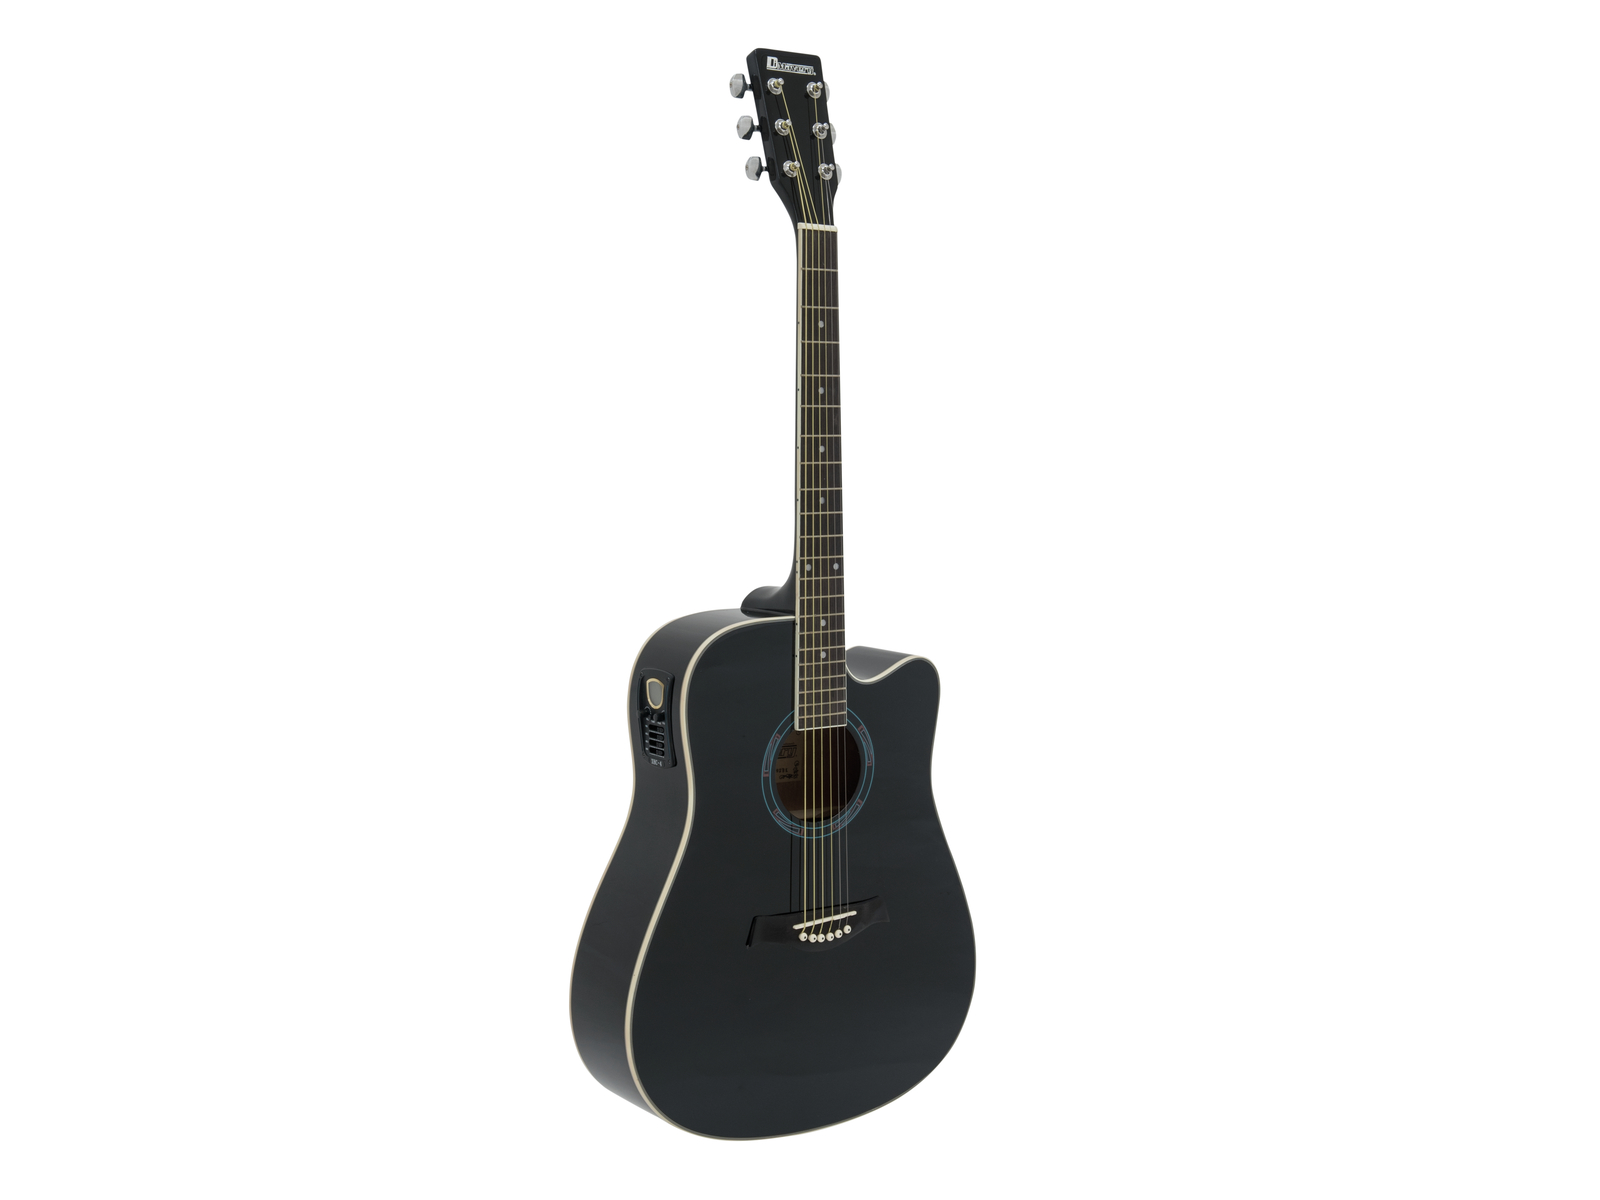 DIMAVERY DR-520 Dreadnought, n